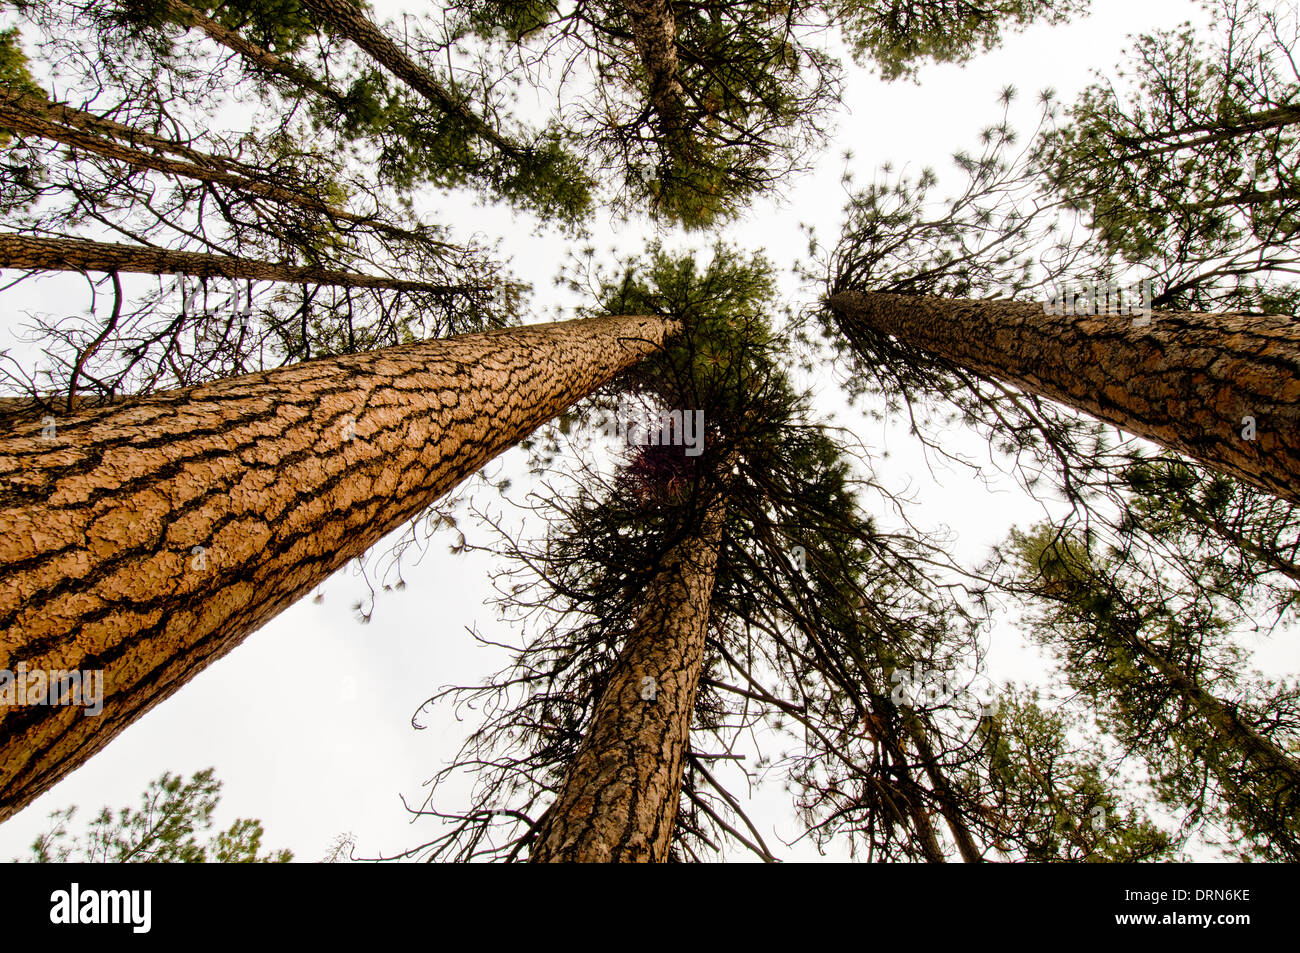 Ponderosa pine (Pinus ponderosa) forest in central Oregon near Sisters - Stock Image